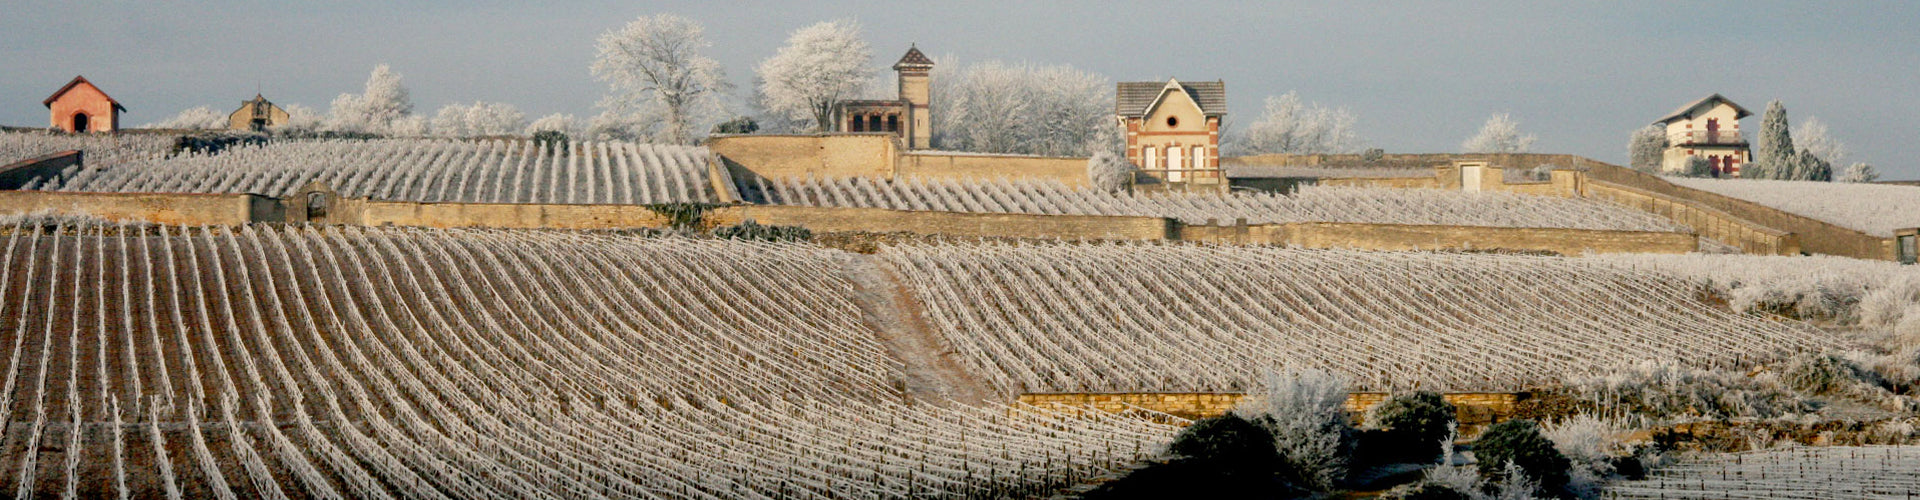 Domaine Pierre Morey Meursault vineyards in winter